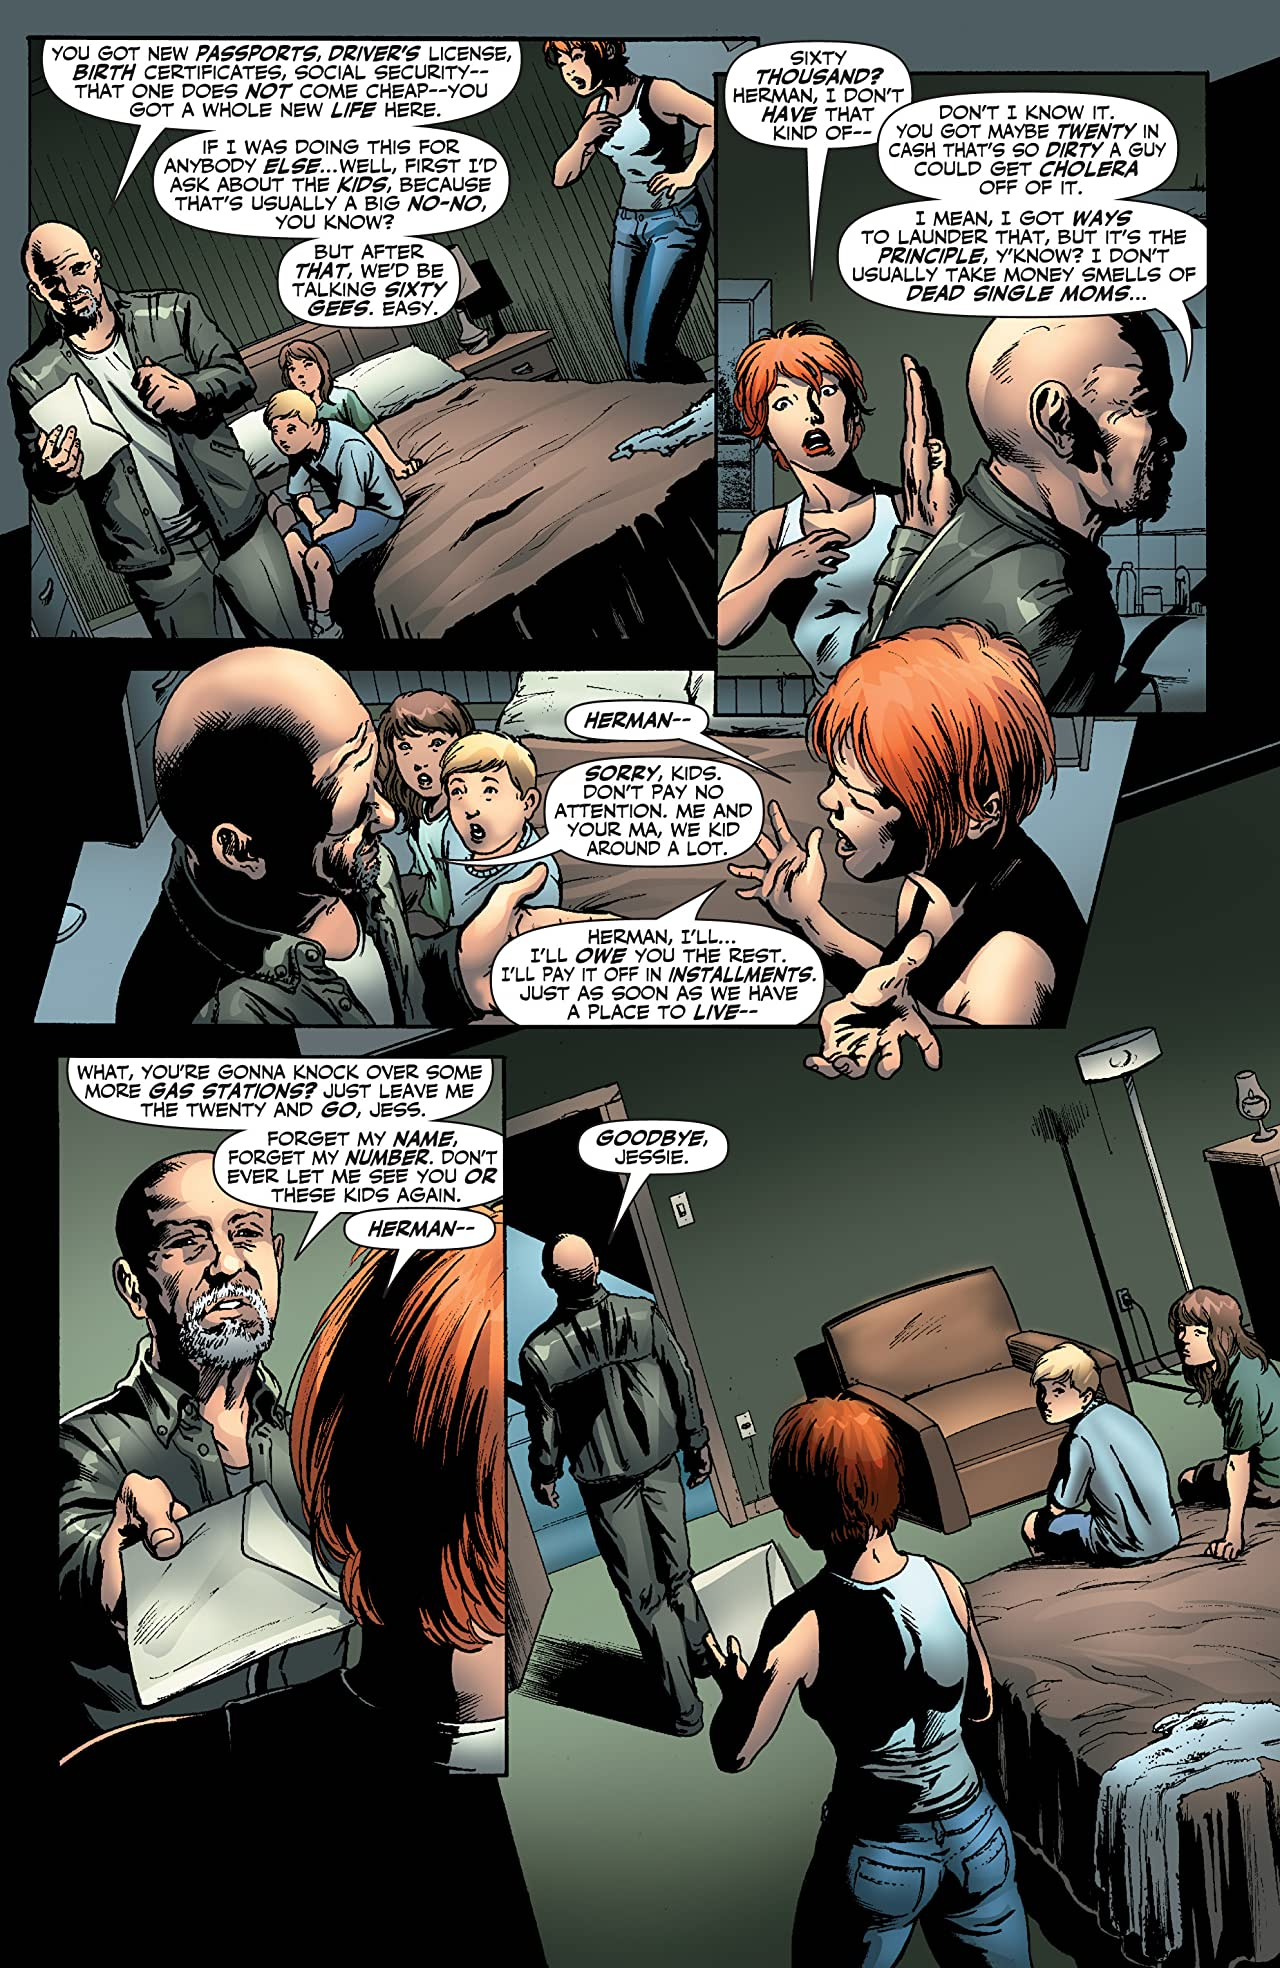 Garth Ennis' Jennifer Blood #19